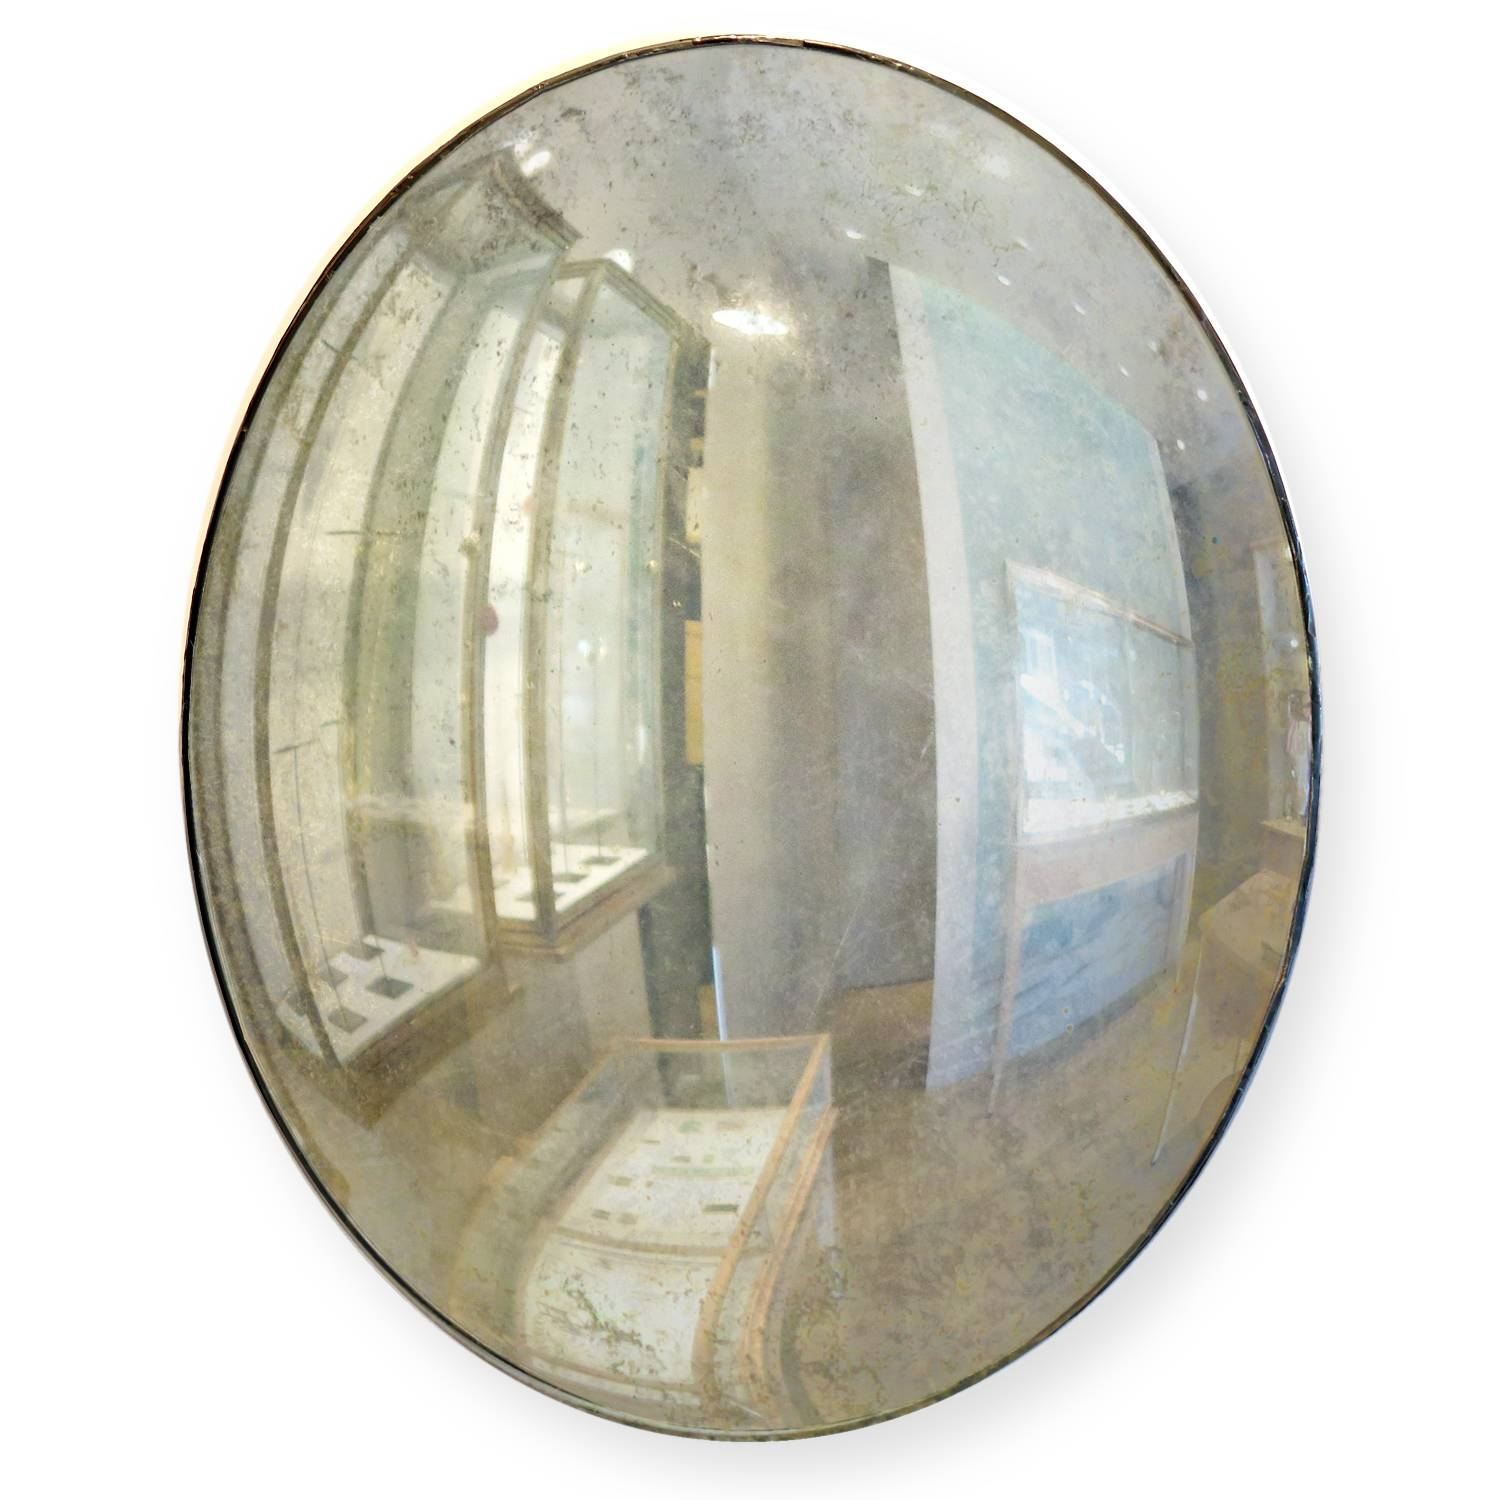 Maureen Fullam 12 Inch Round Silver Leafed Mirror - August intended for Round Convex Mirrors (Image 15 of 25)